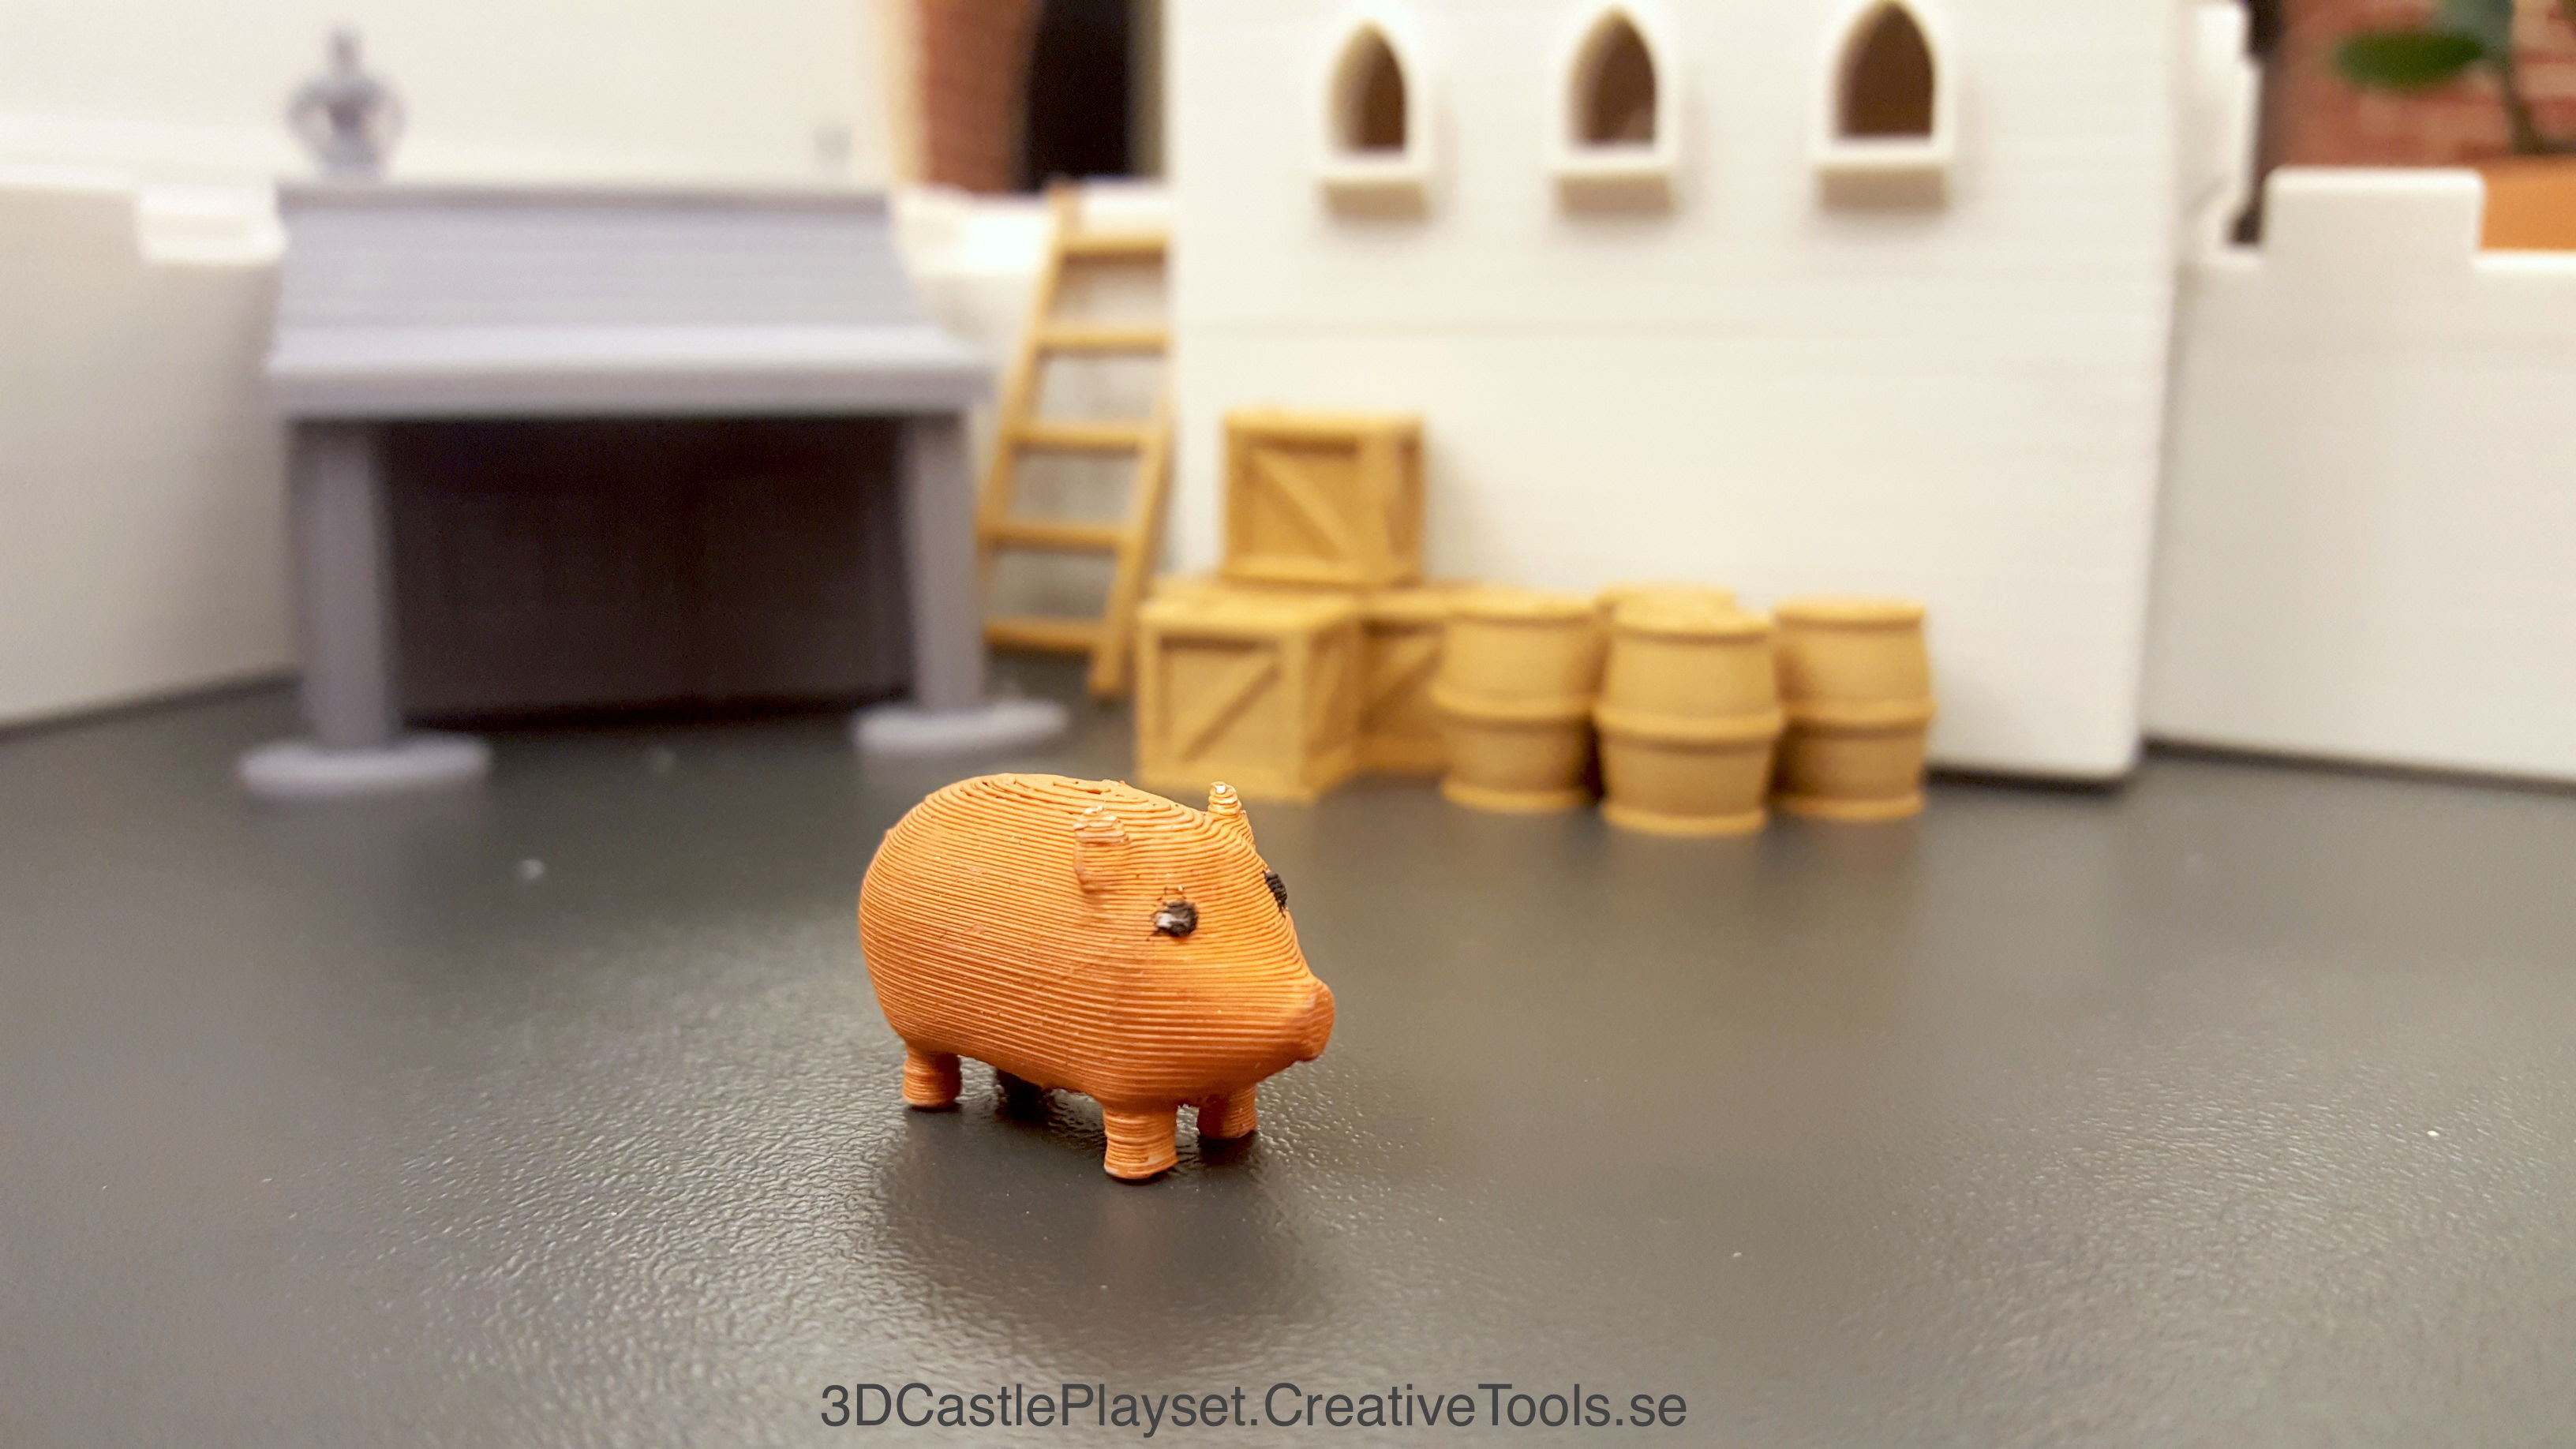 Pig-modular-castle-playset---3d-printable-by-creativetools-se-3500-3500